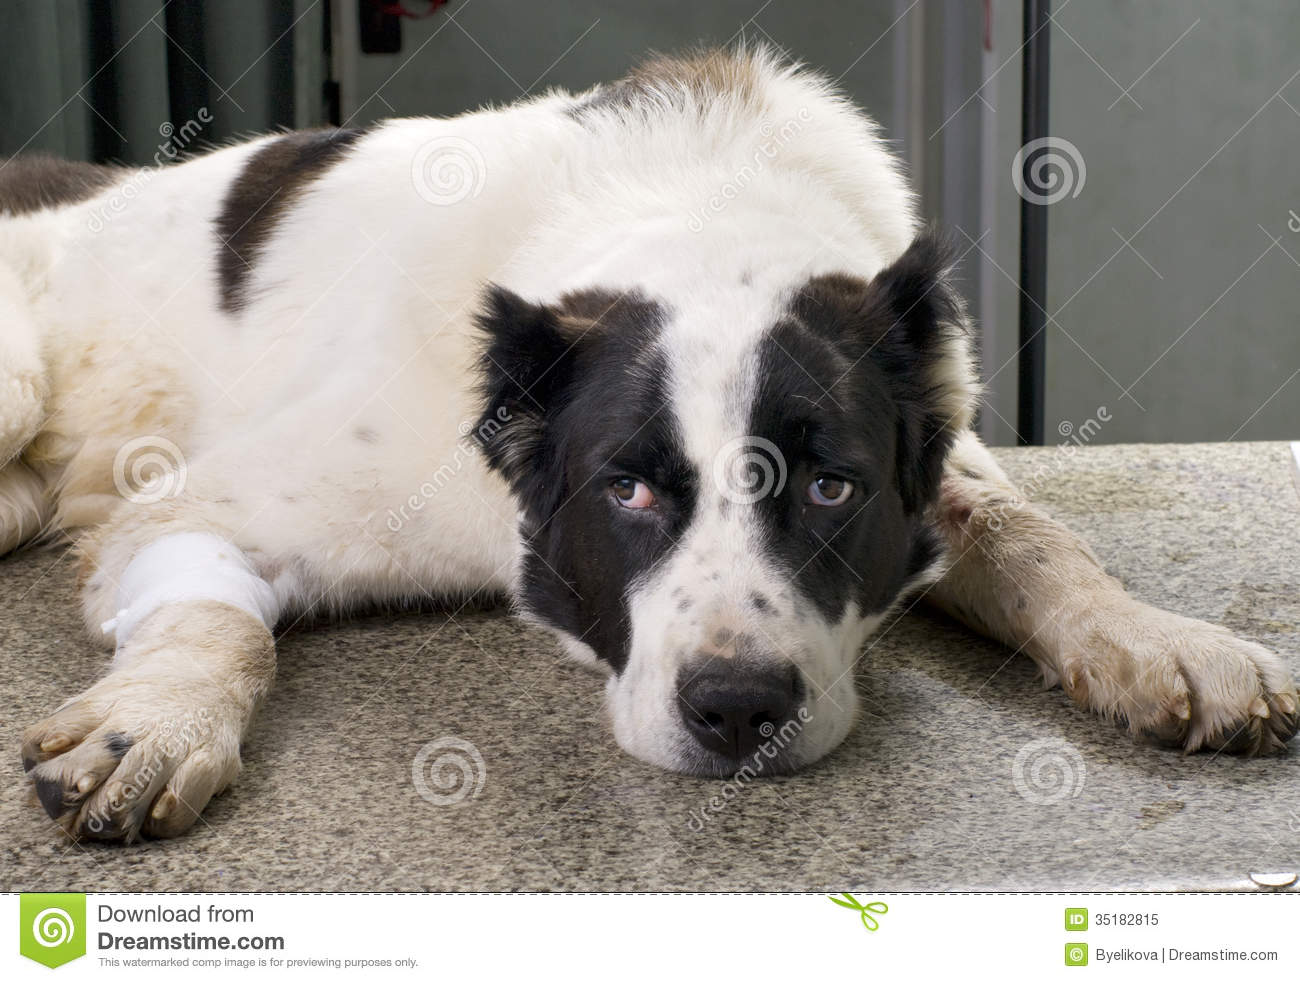 Download Sick dog stock image. Image of canine, animal, hold, mixed - 35182815